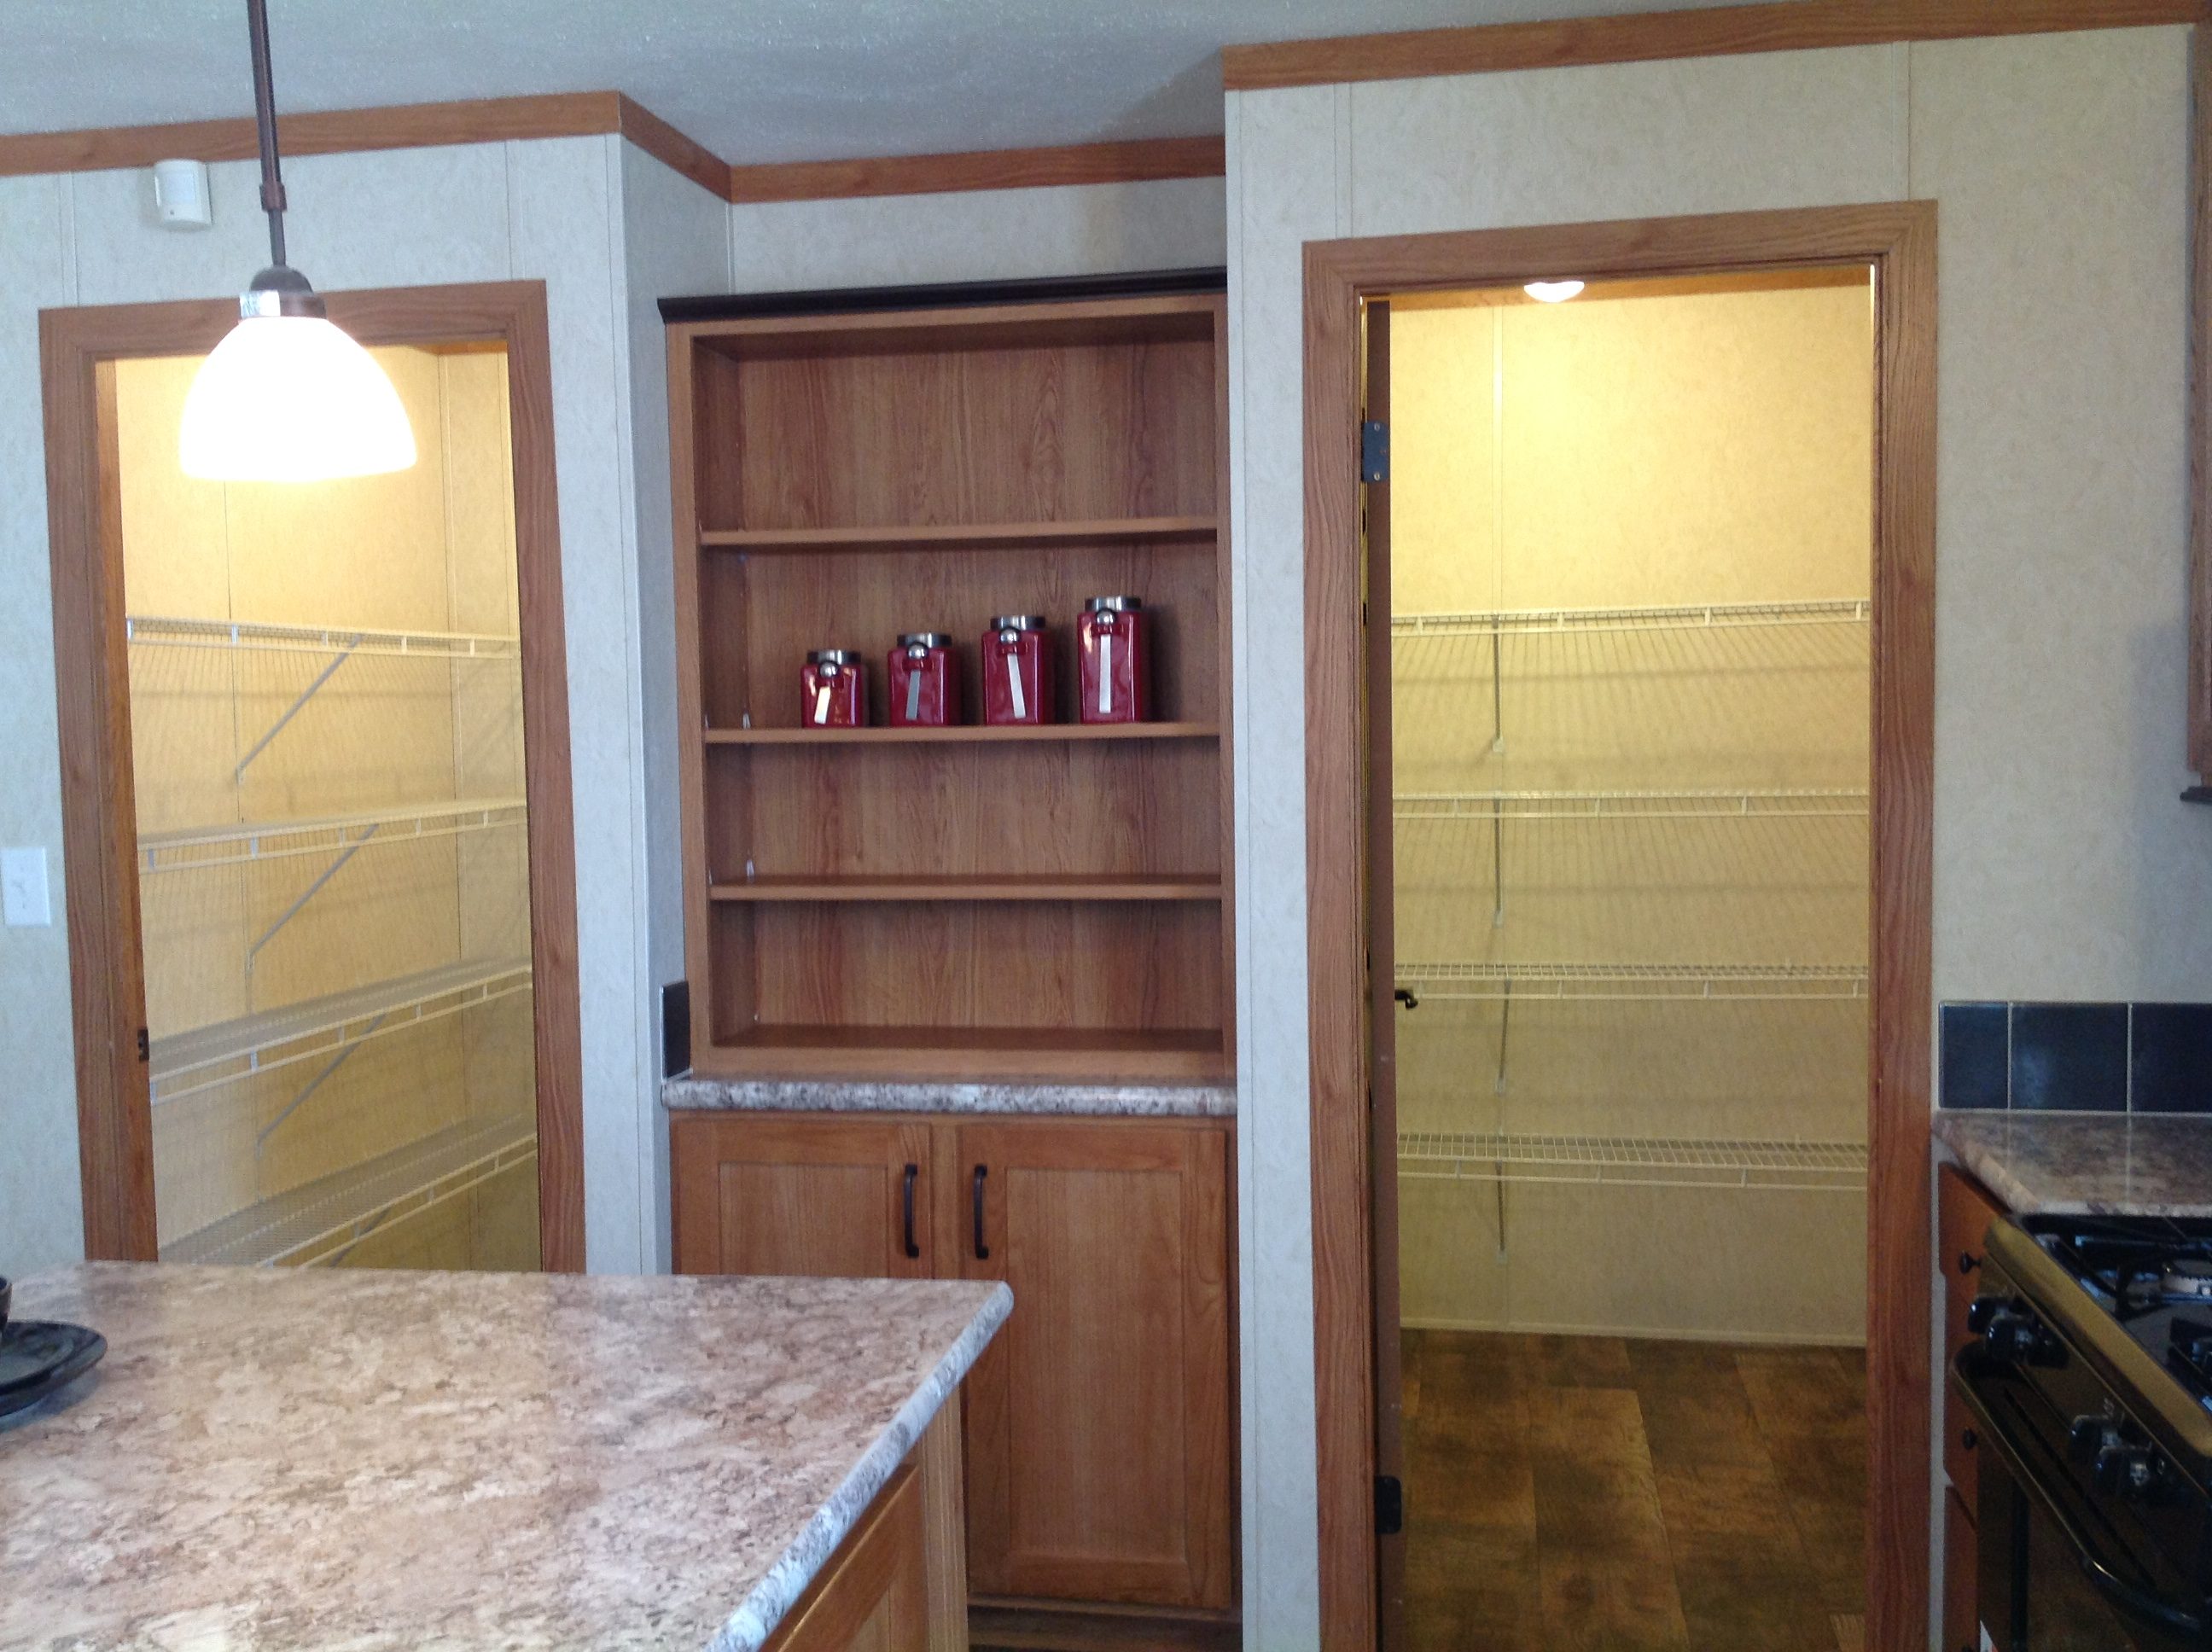 Just look at this walk-in, walk-through pantry